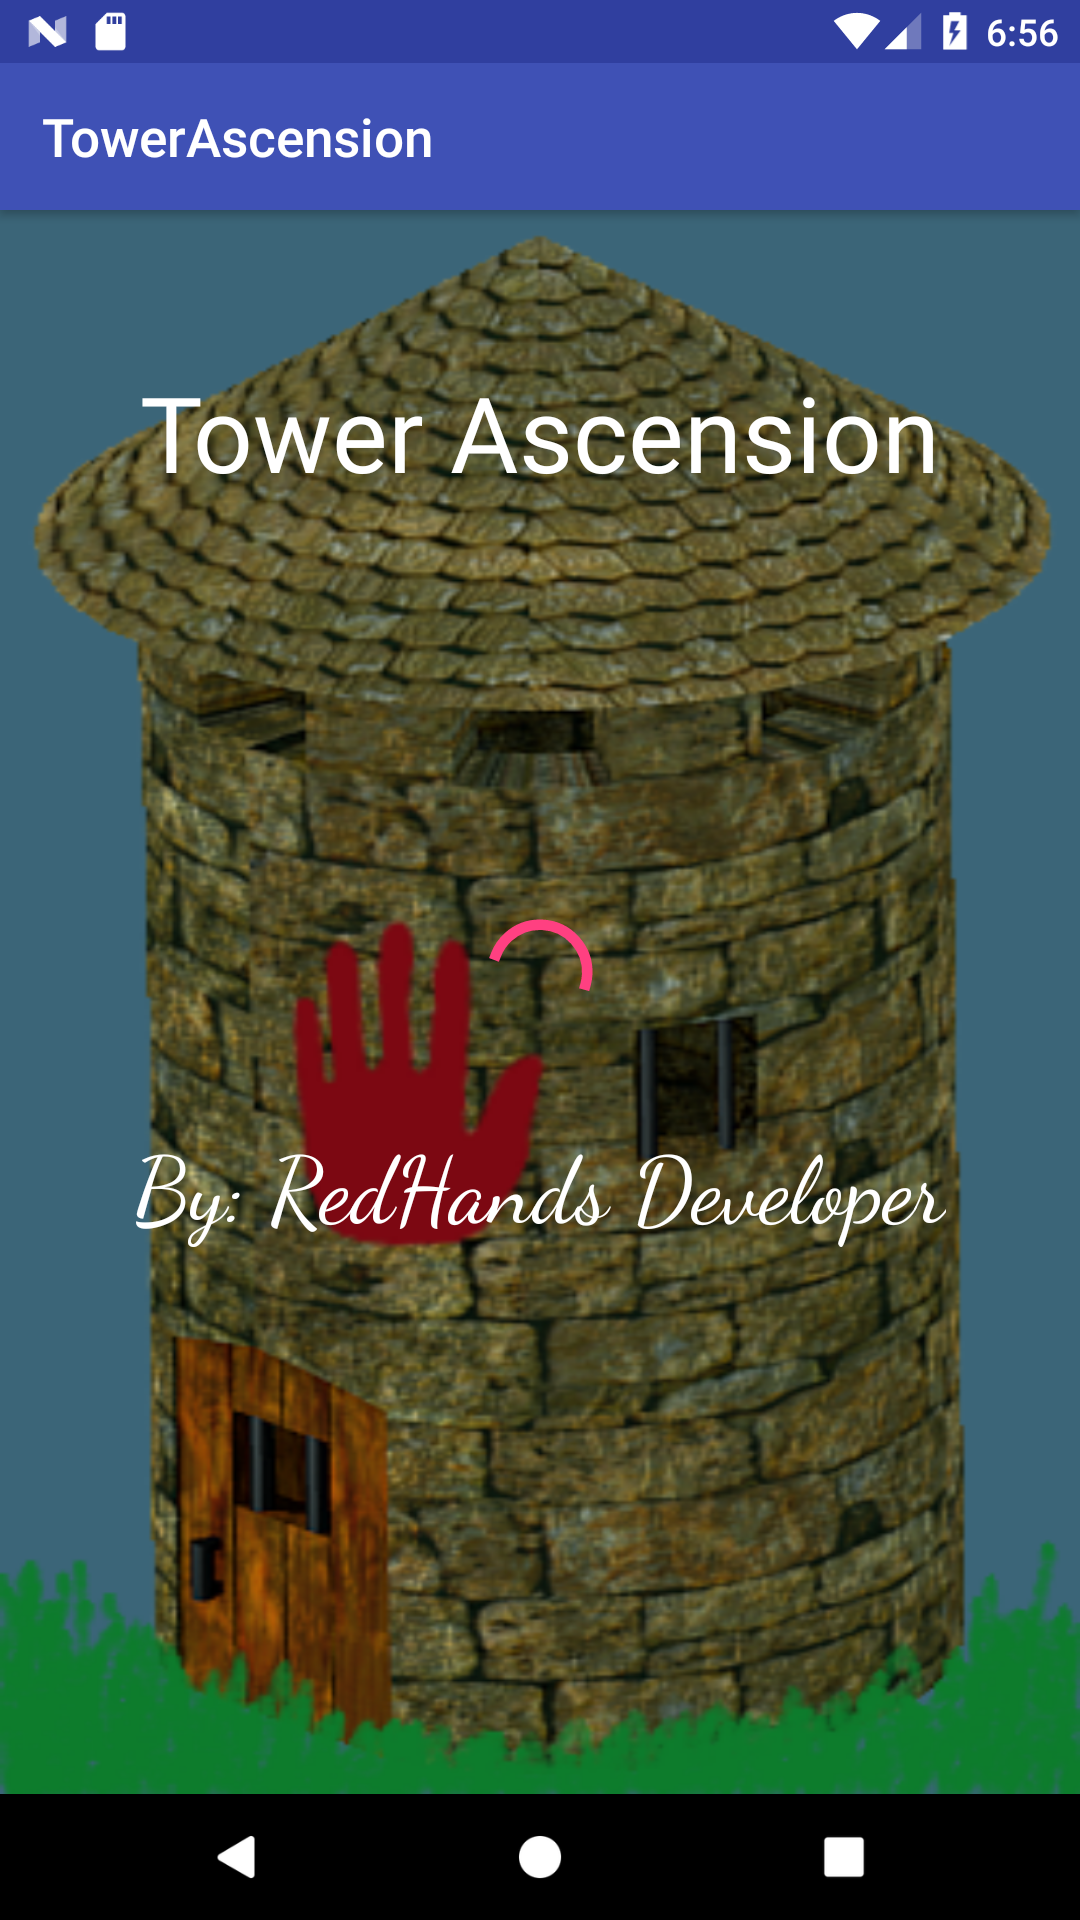 Tower Ascension